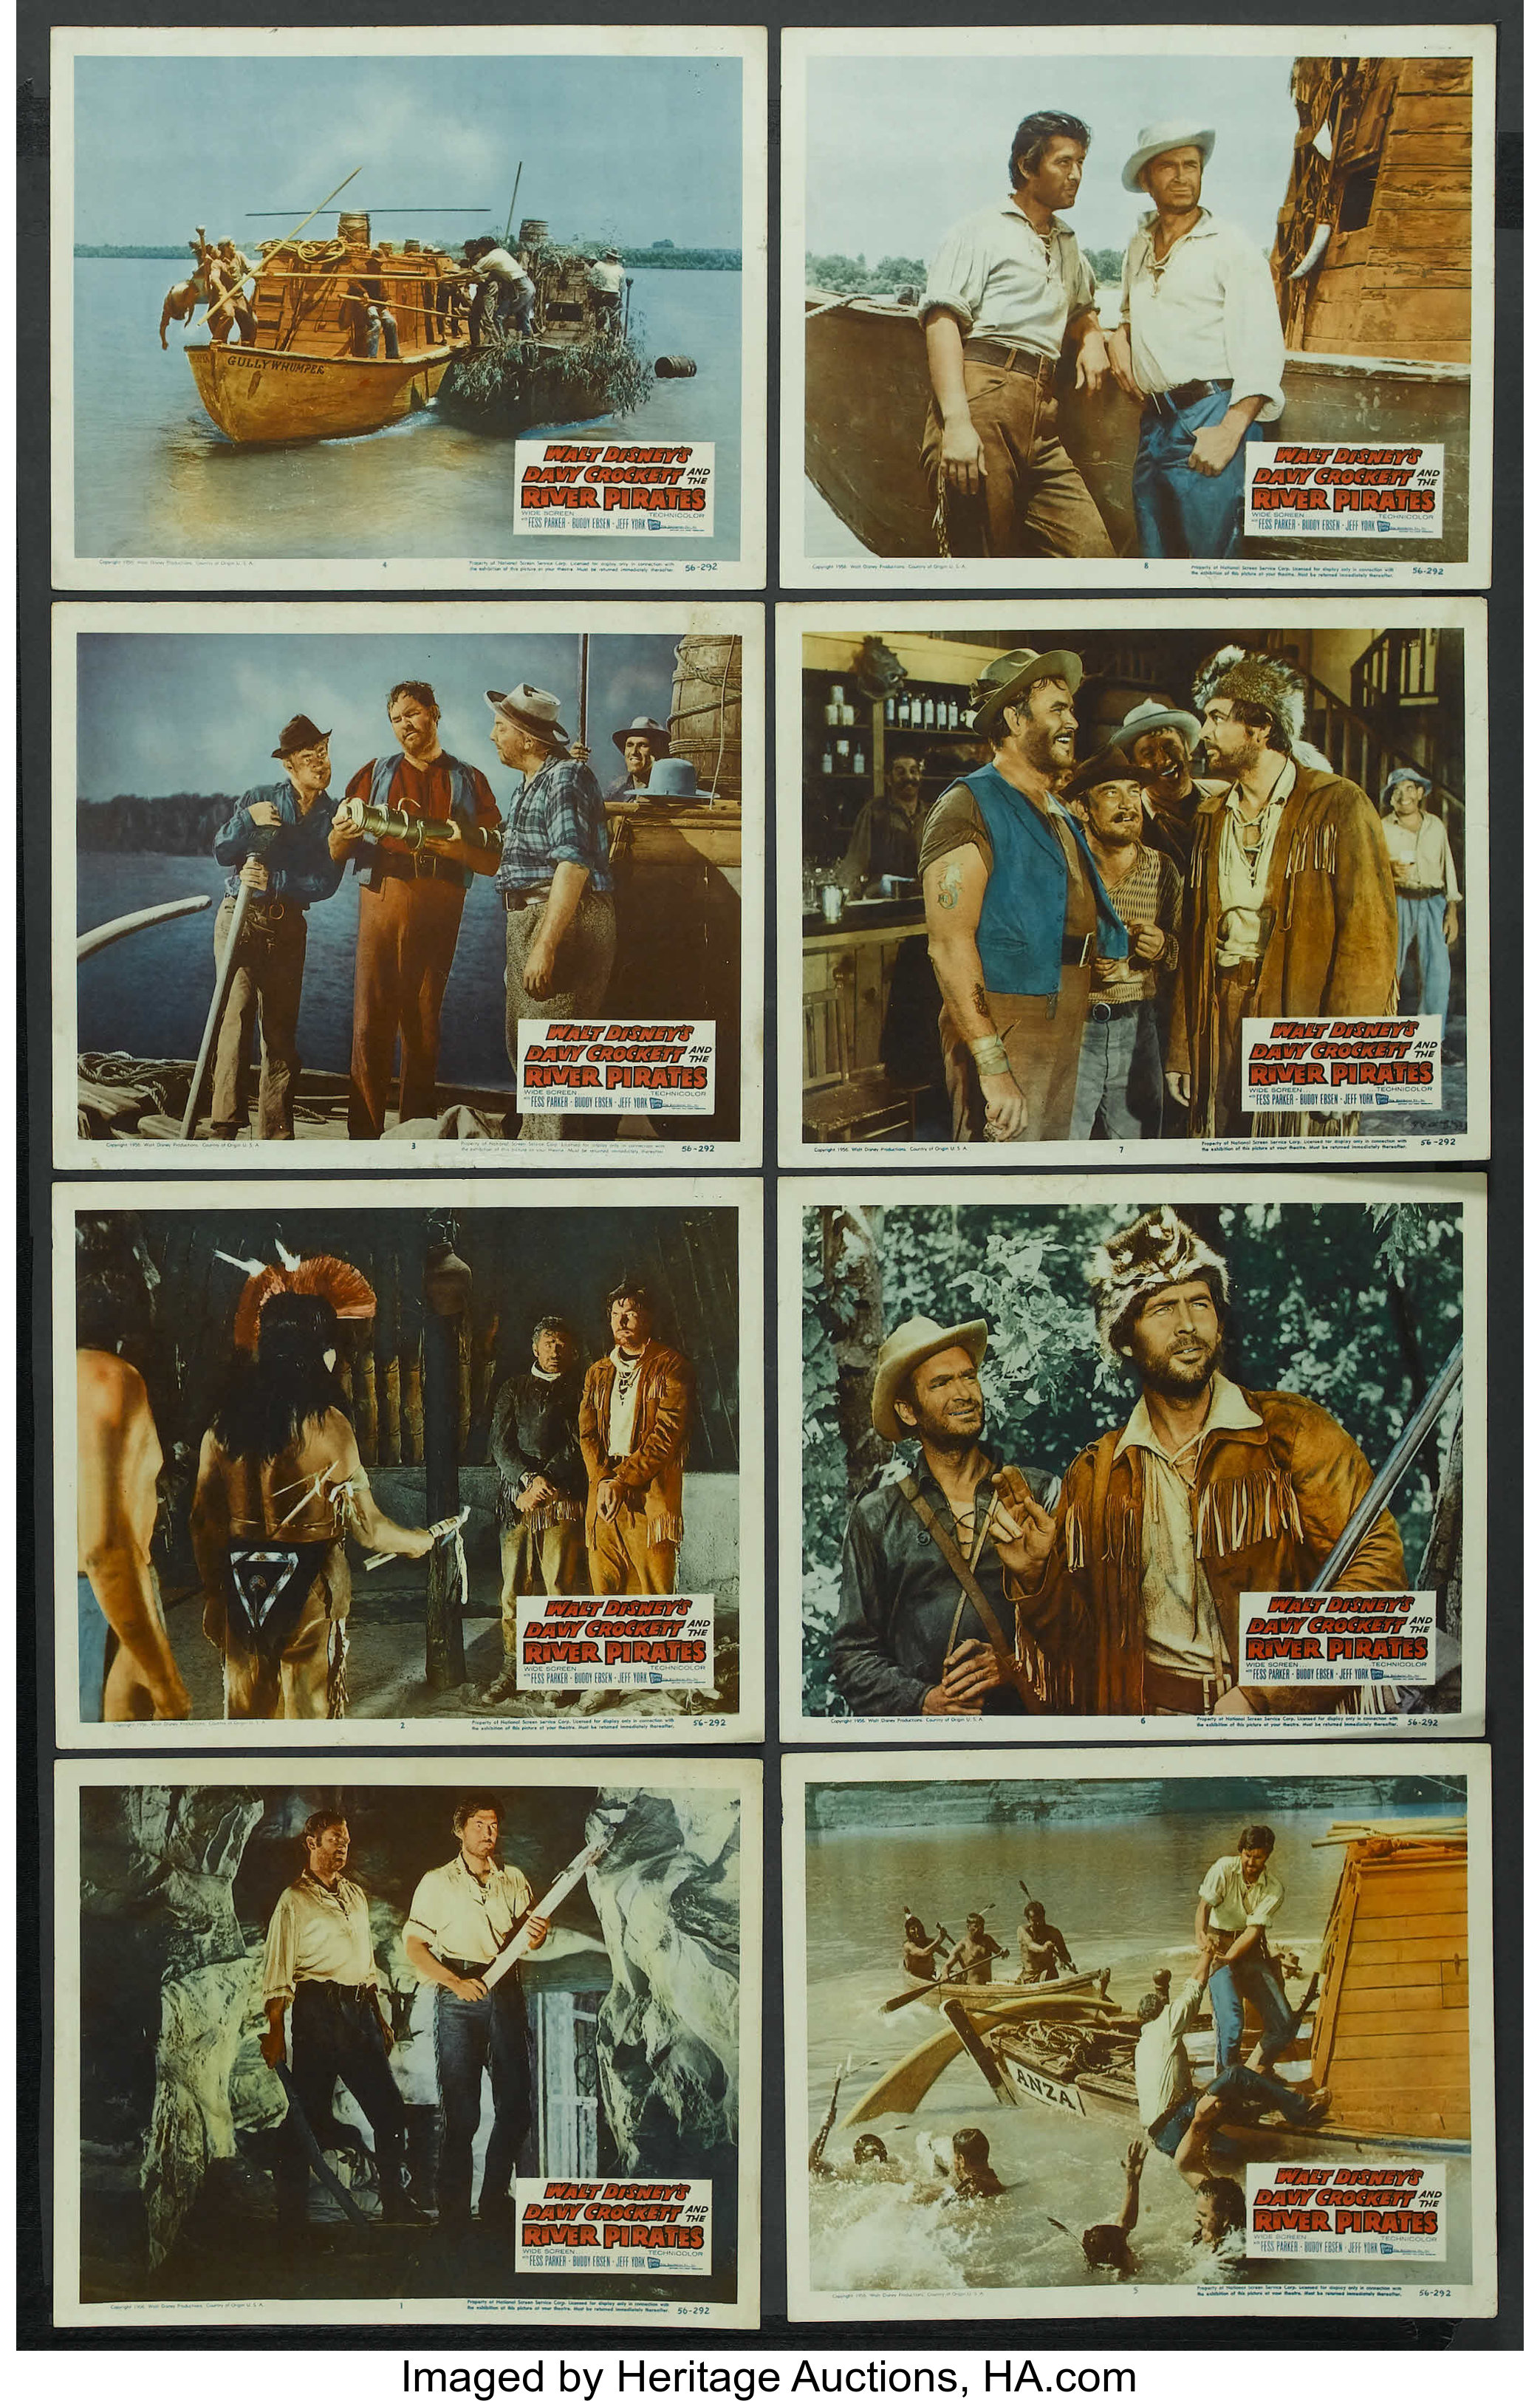 DAVY CROCKETT AND RIVER PIRATES FESS PARKER LOBBY CARD